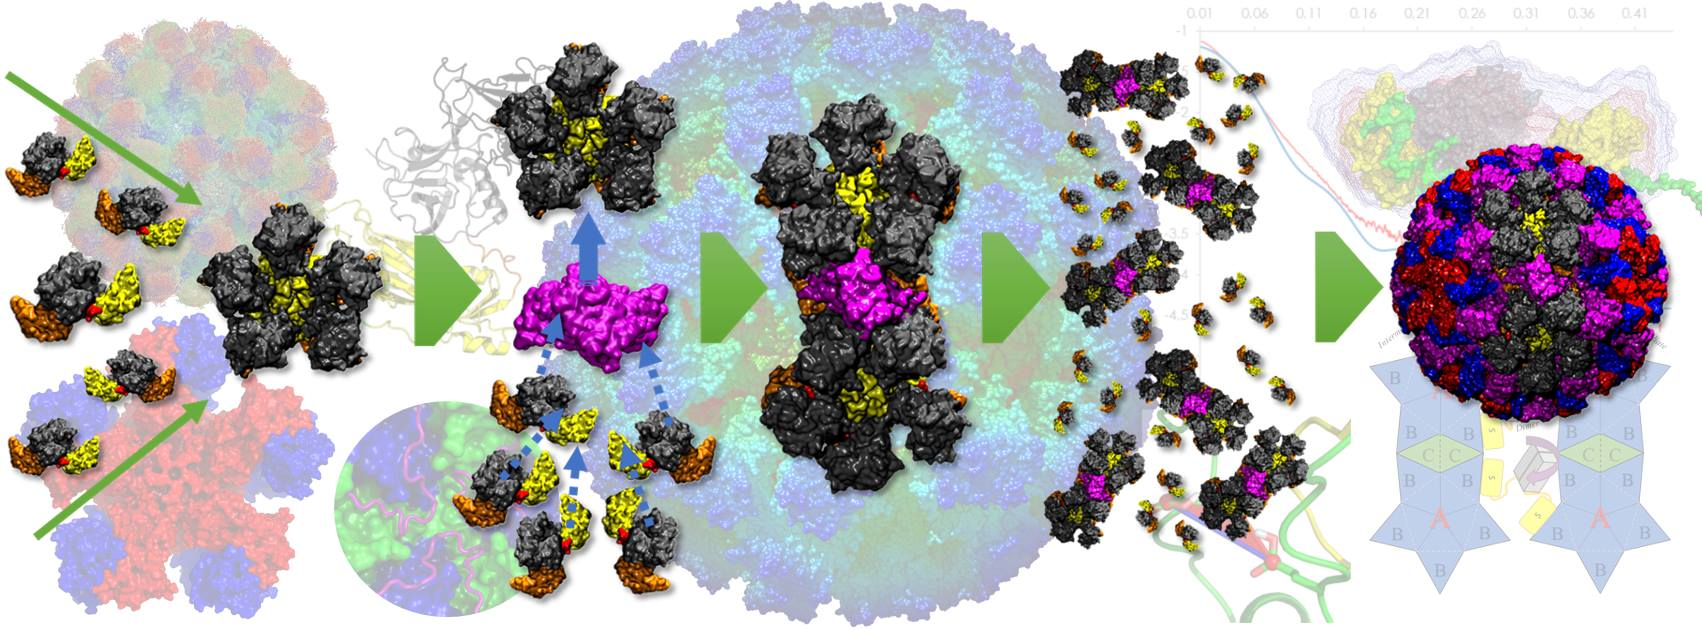 Norovirus capsid assembly hypothesis